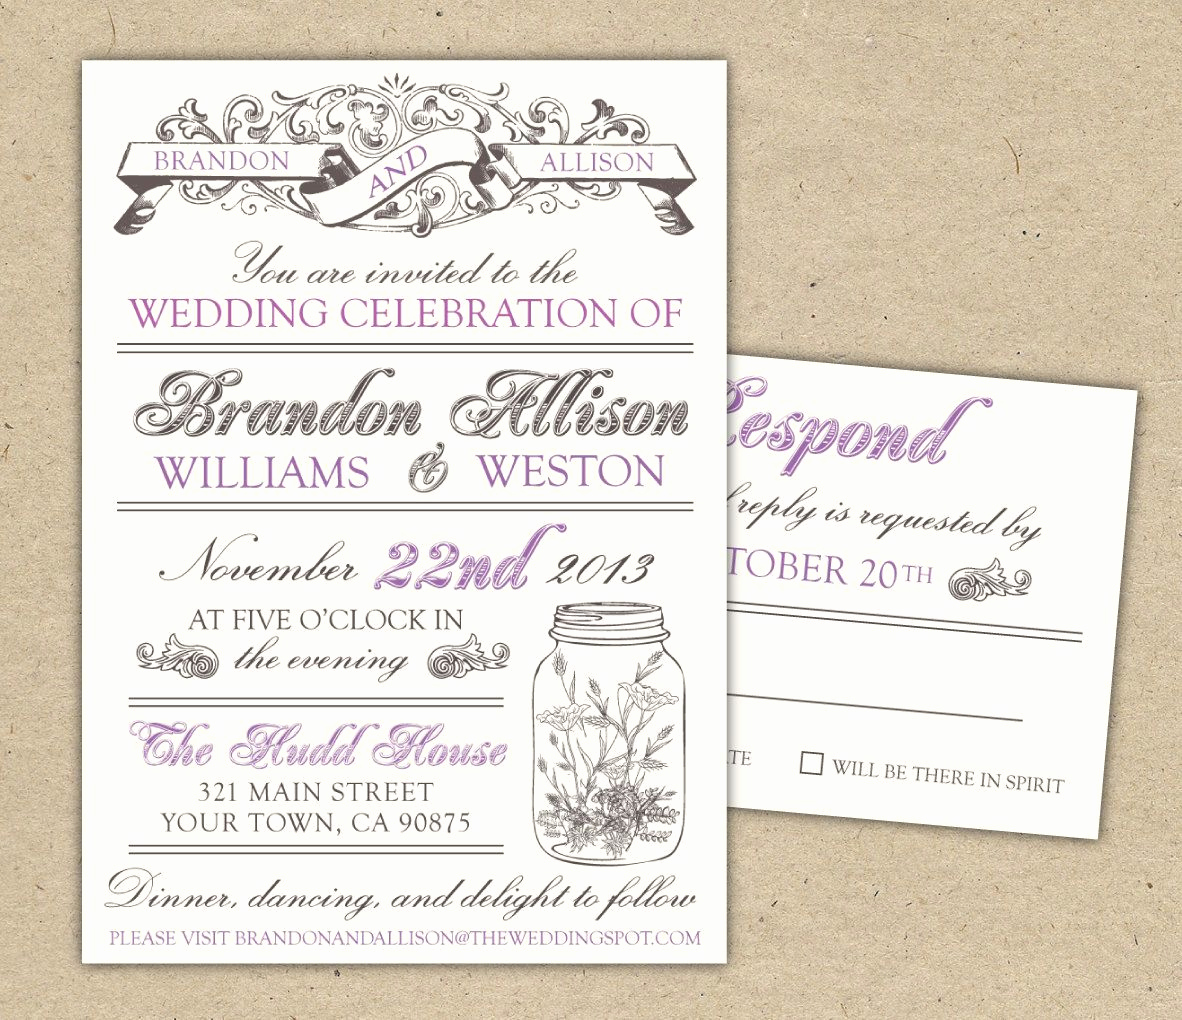 Wedding Invitation Templates Free Fresh Free Templates for Invitations